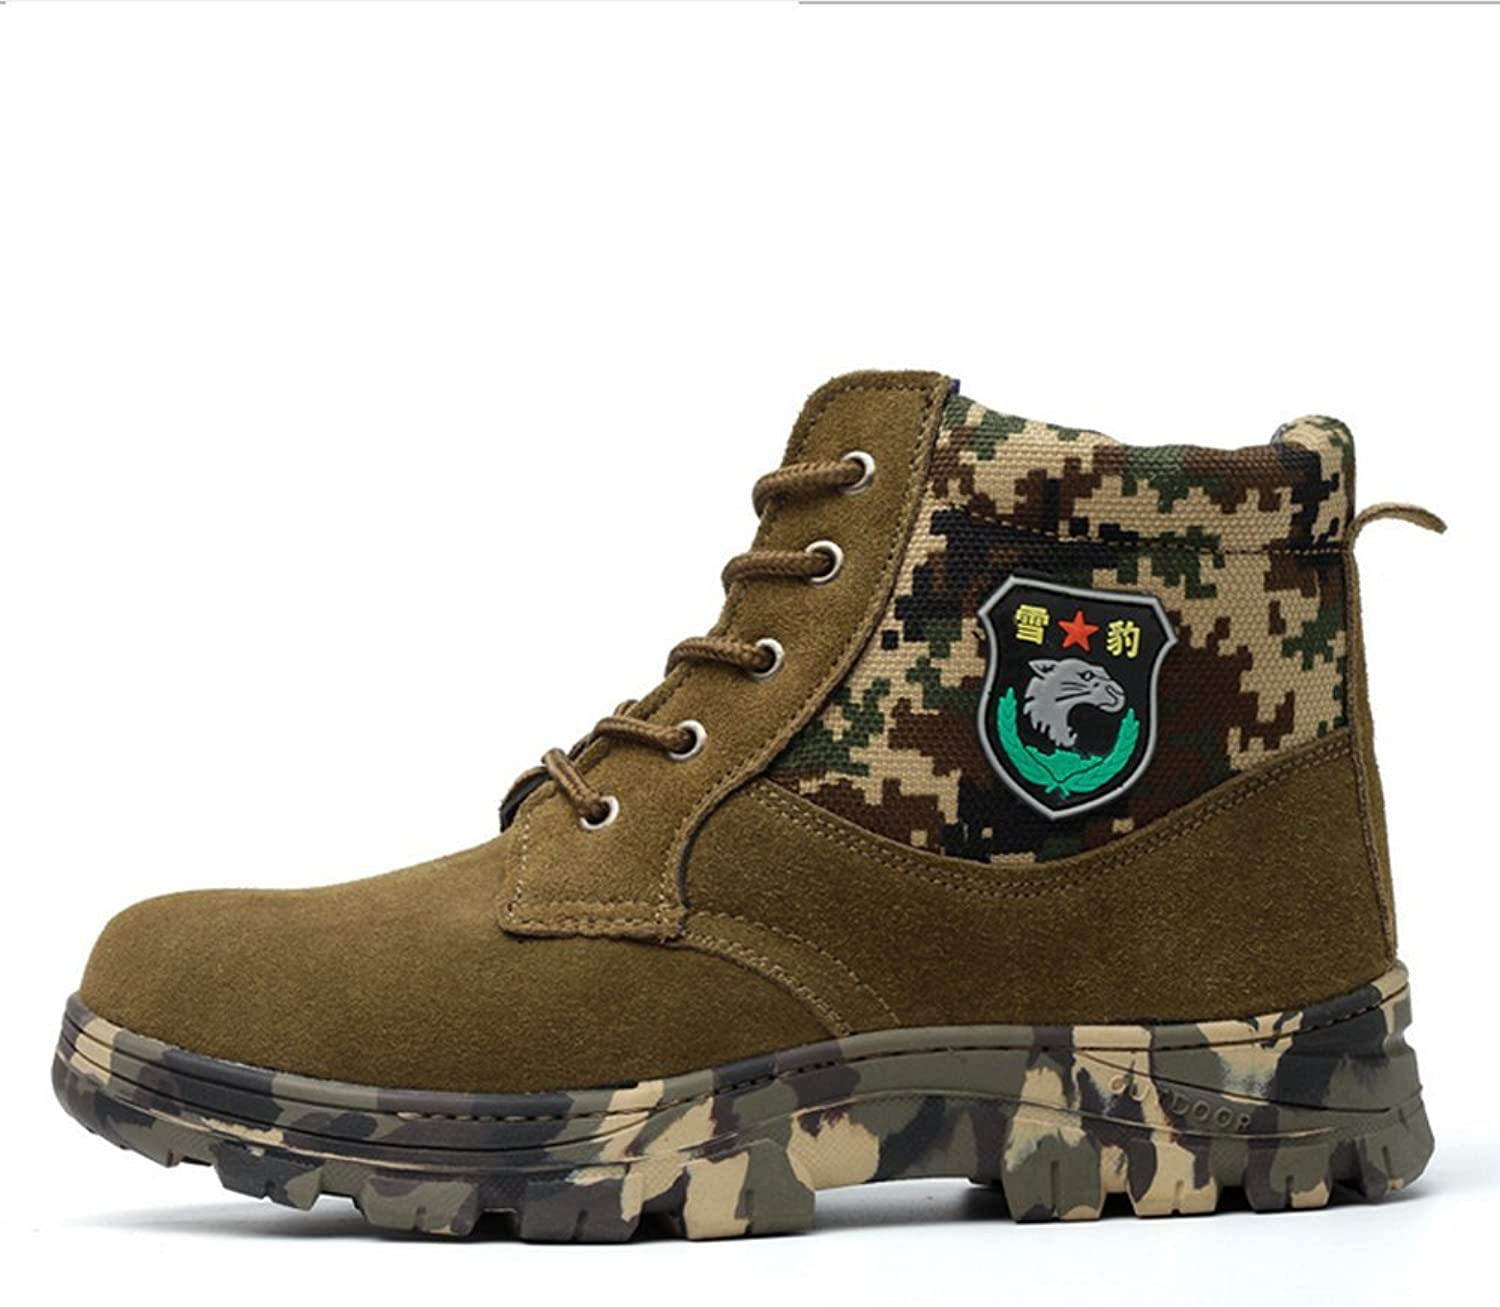 Warwolf Safety shoes Footware Ventilation Shock Absorber Durable Construction shoes Camouflage Green